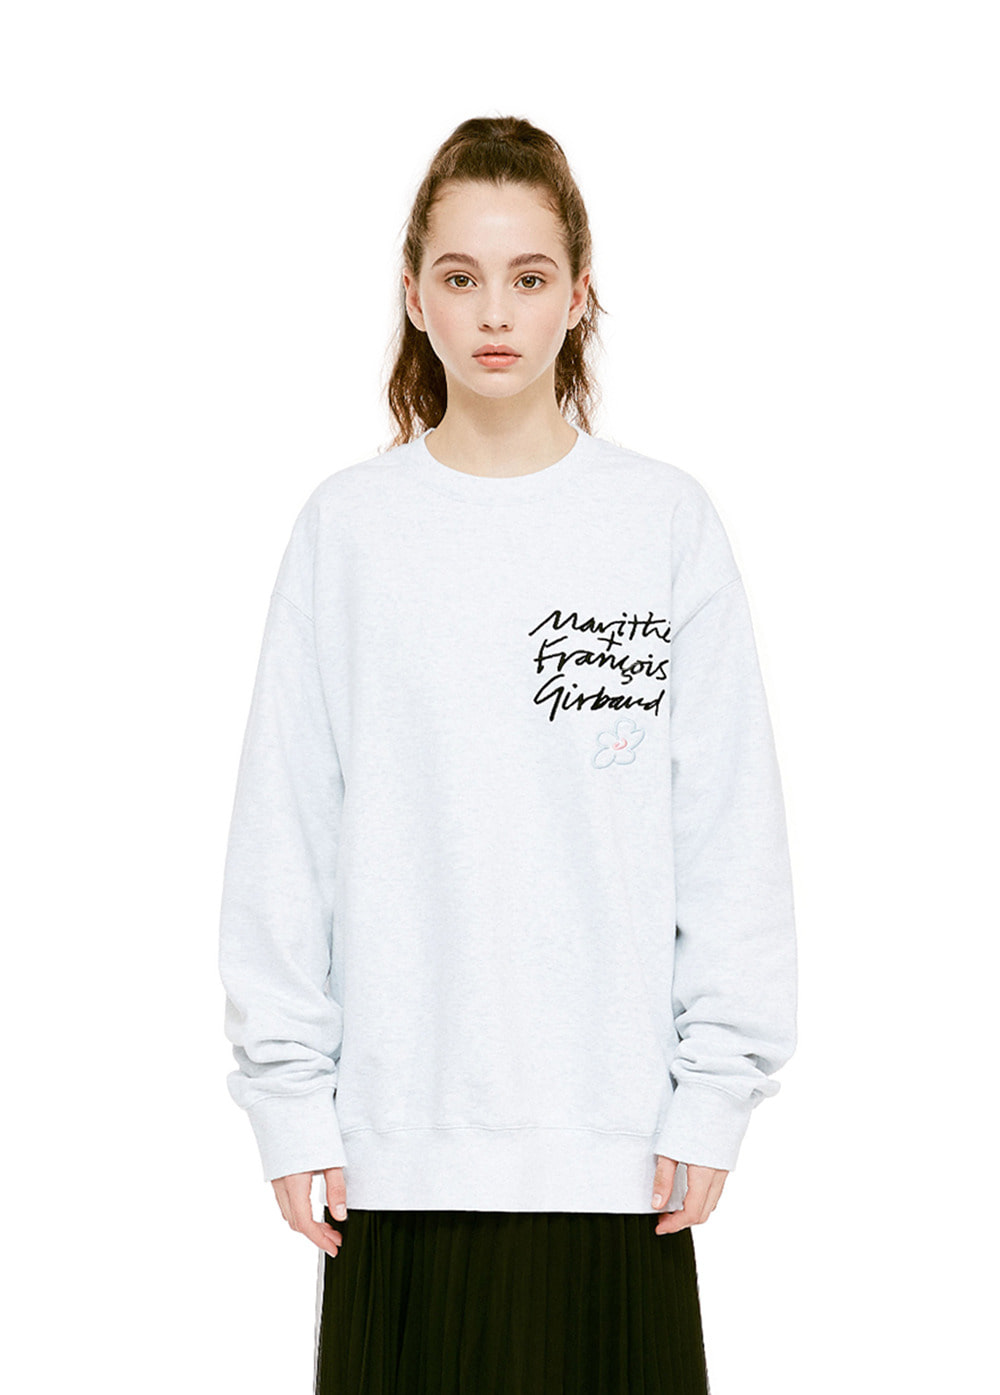 MFG HANDWRITTEN SWEATSHIRT heather gray